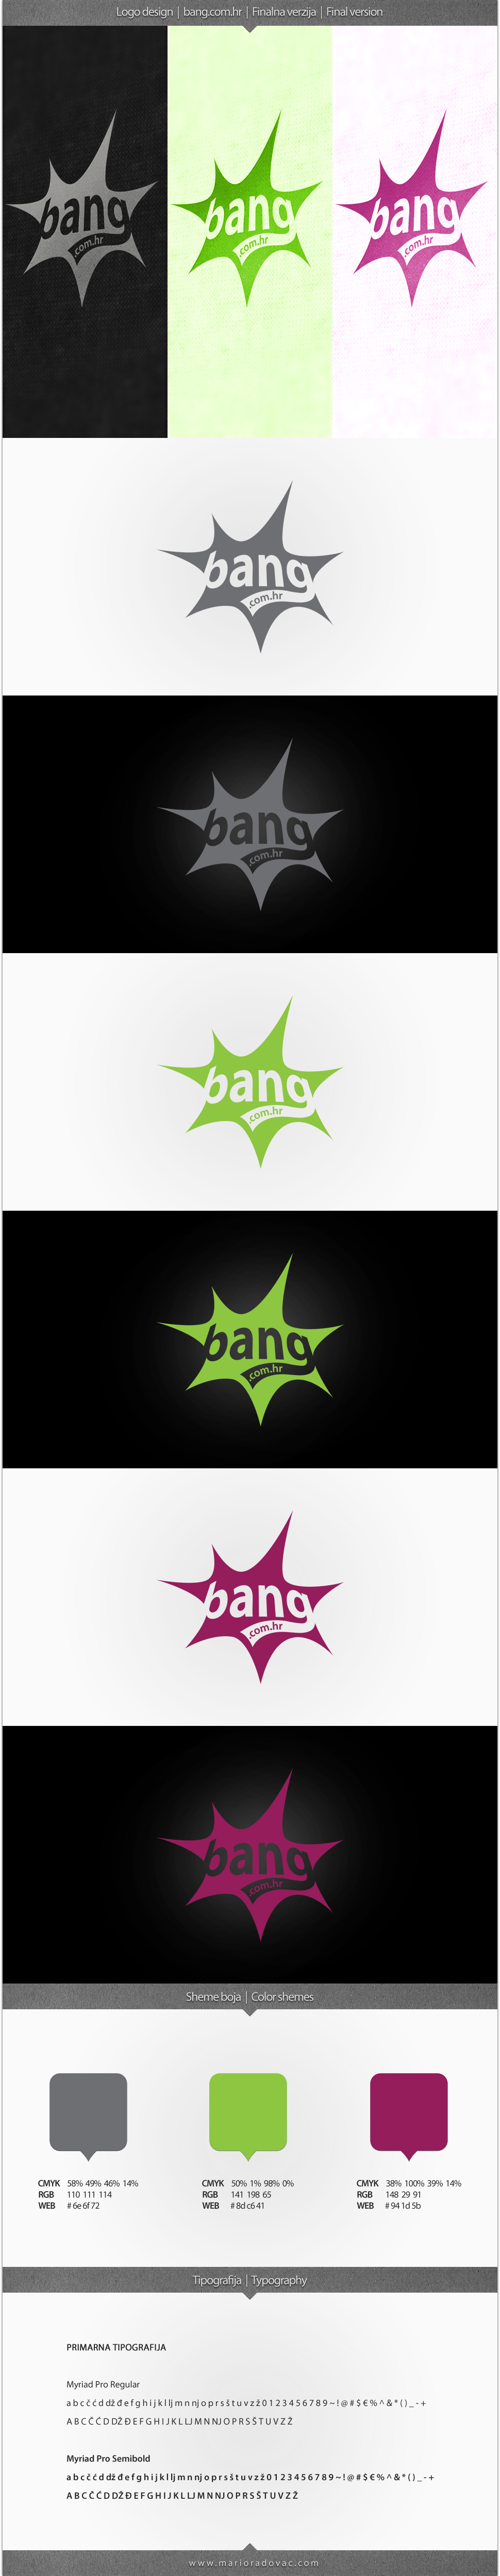 bang.com.hr by MJ-designer